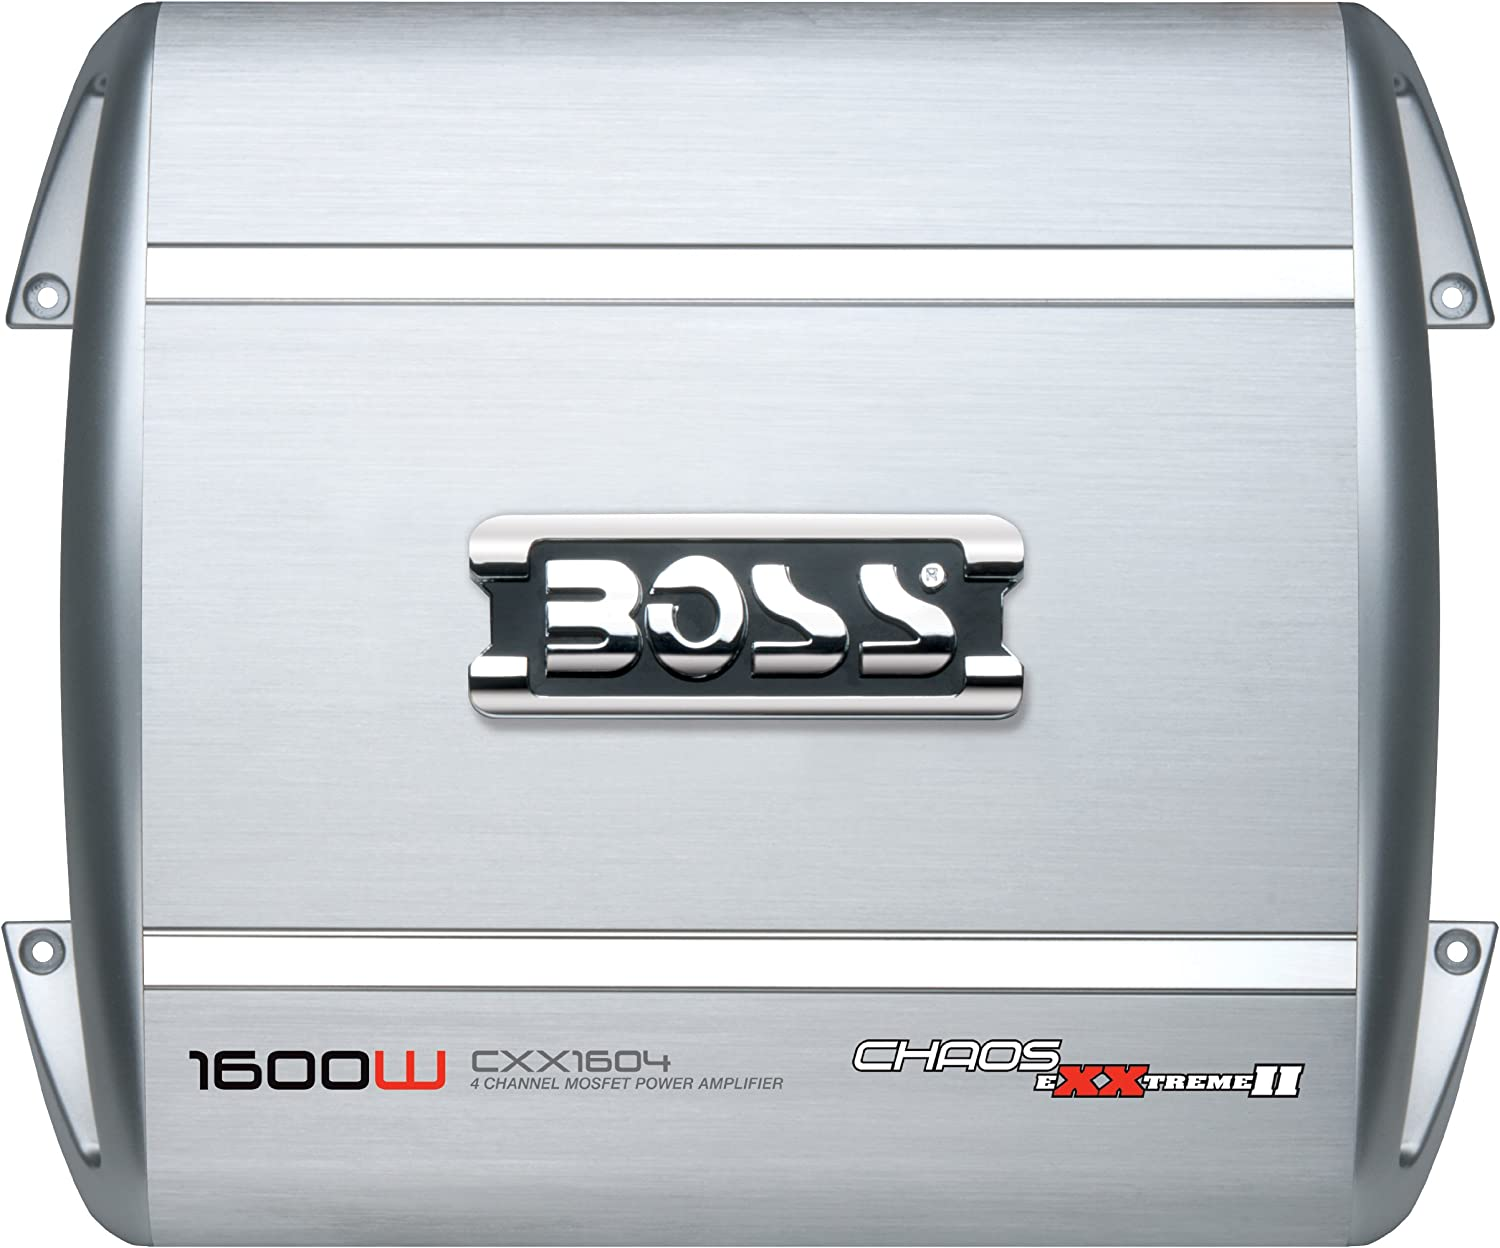 BOSS Audio Outlet Philadelphia Mall sale feature Systems CXX1604 Chaos 1600-Watts II Exxtreme Ran Full